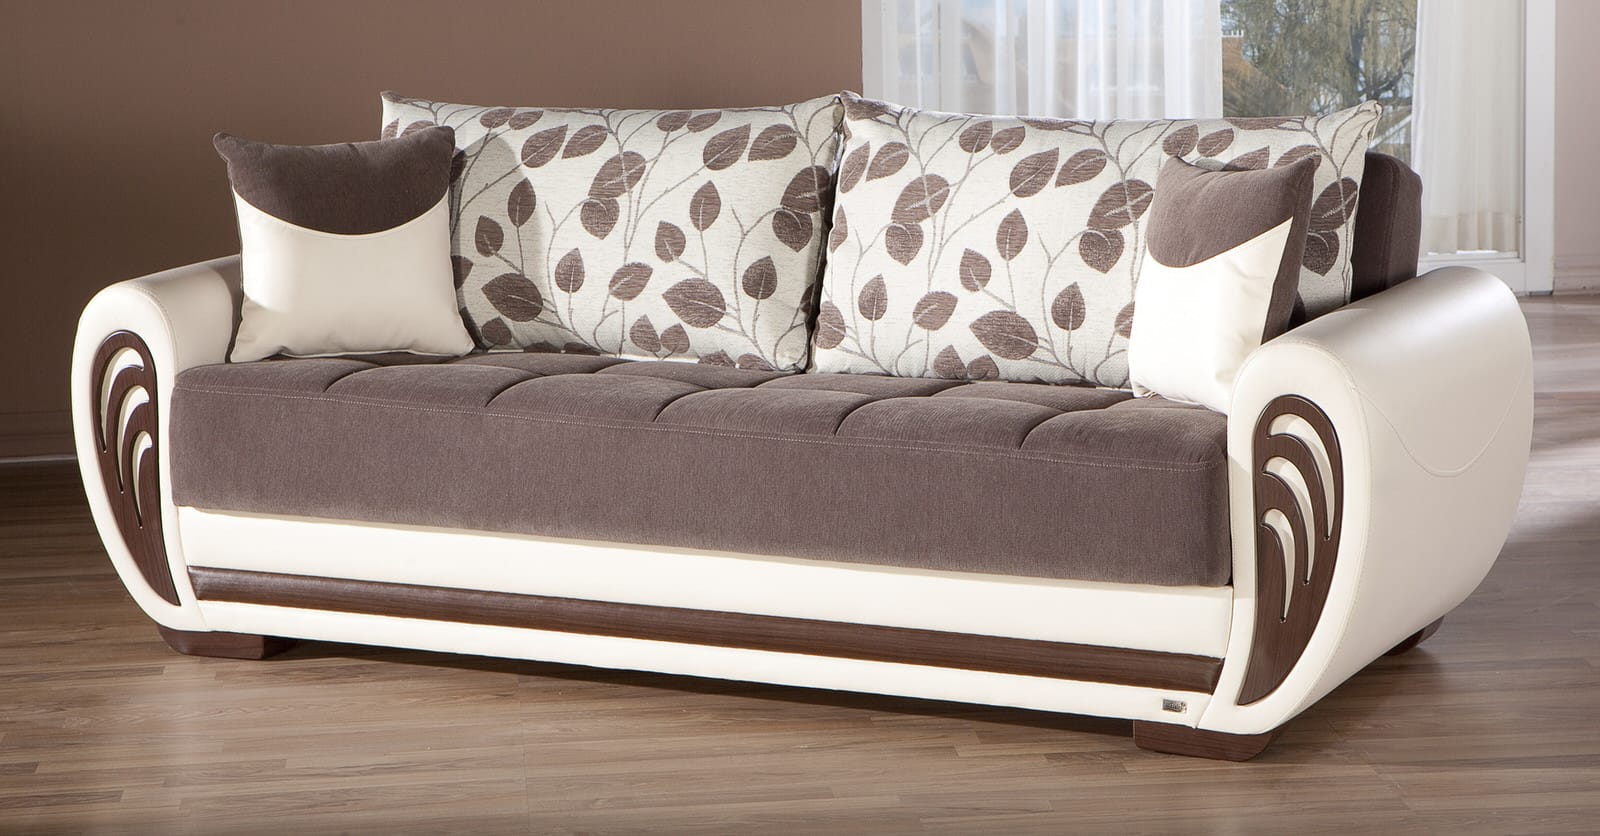 Marina Armoni Brown Convertible Sofa Bed By Istikbal Sunset